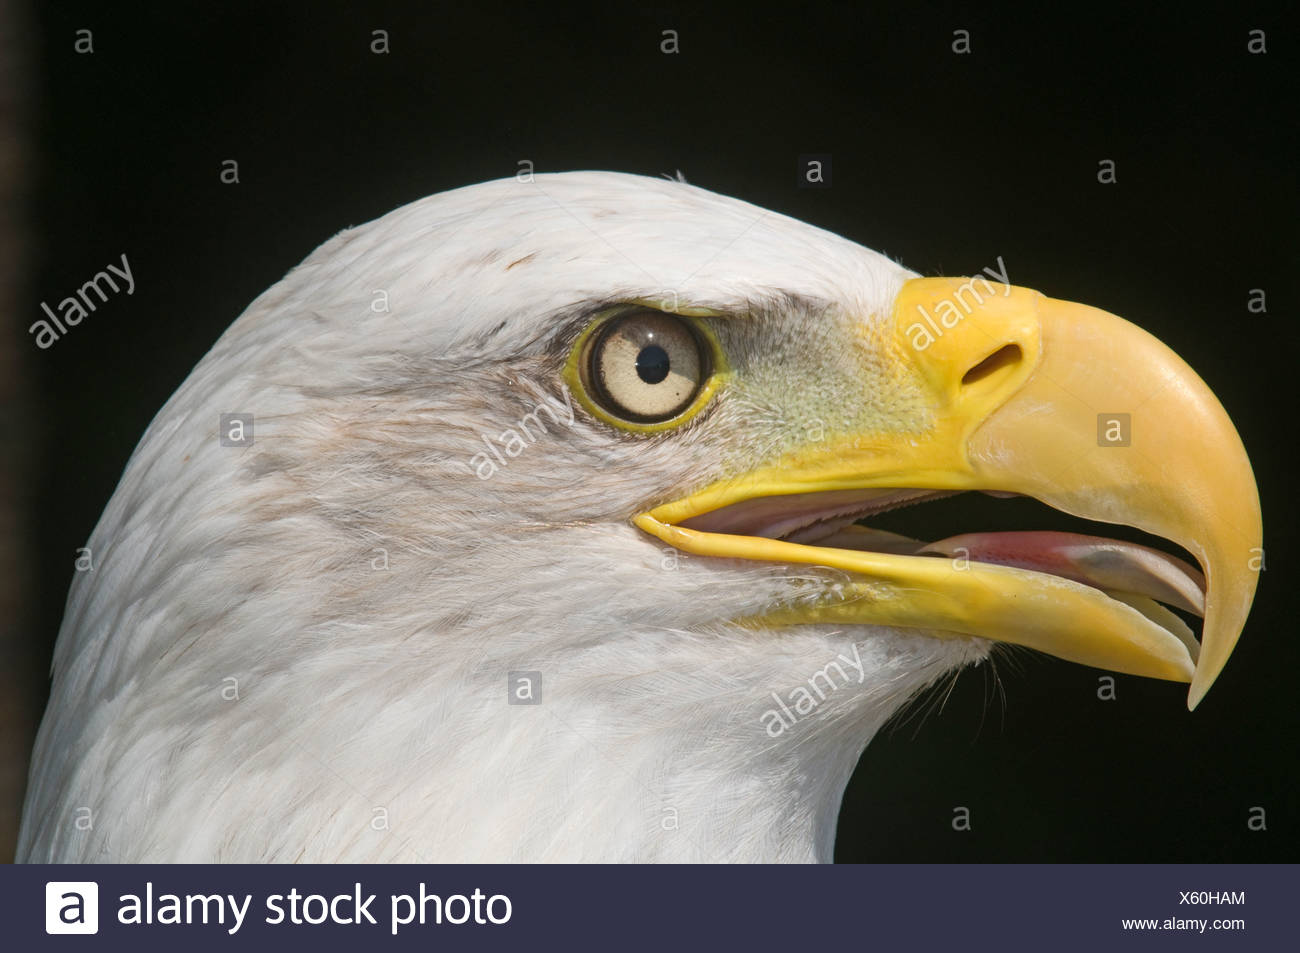 Bald Eagle Halaeetus eucocephalus close up of head - Stock Image